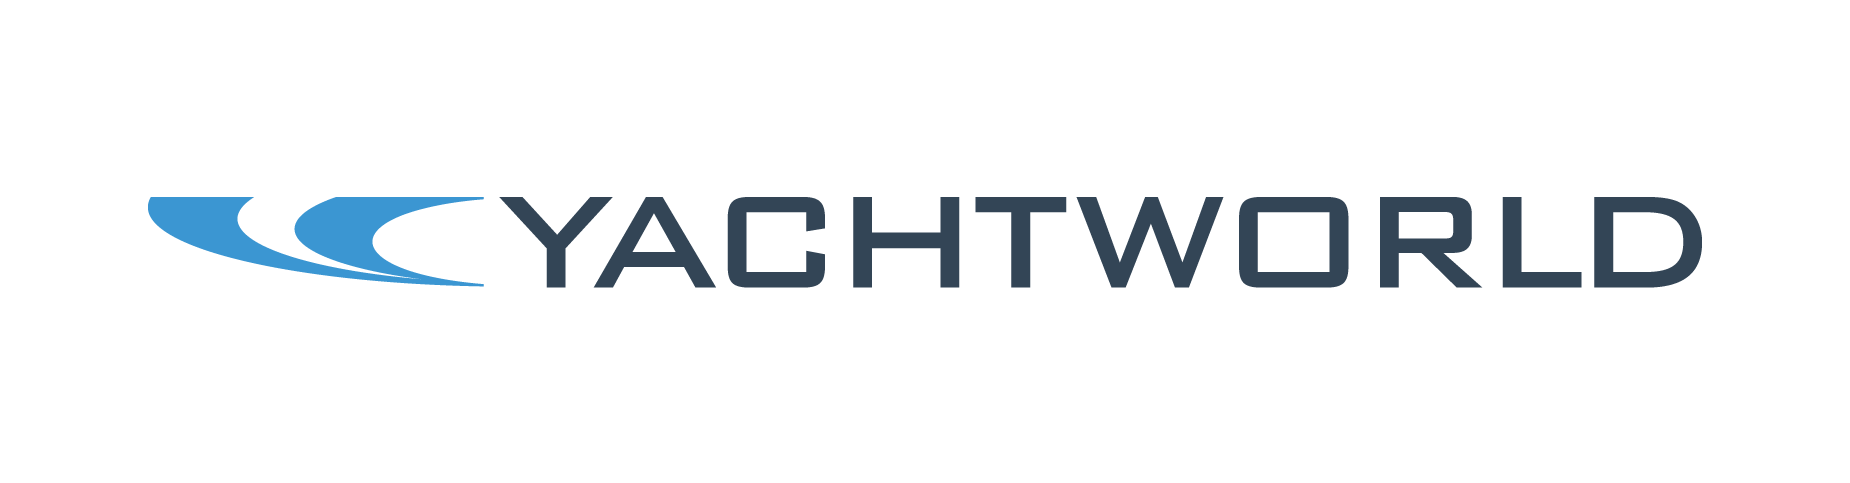 YachtWorld Logo